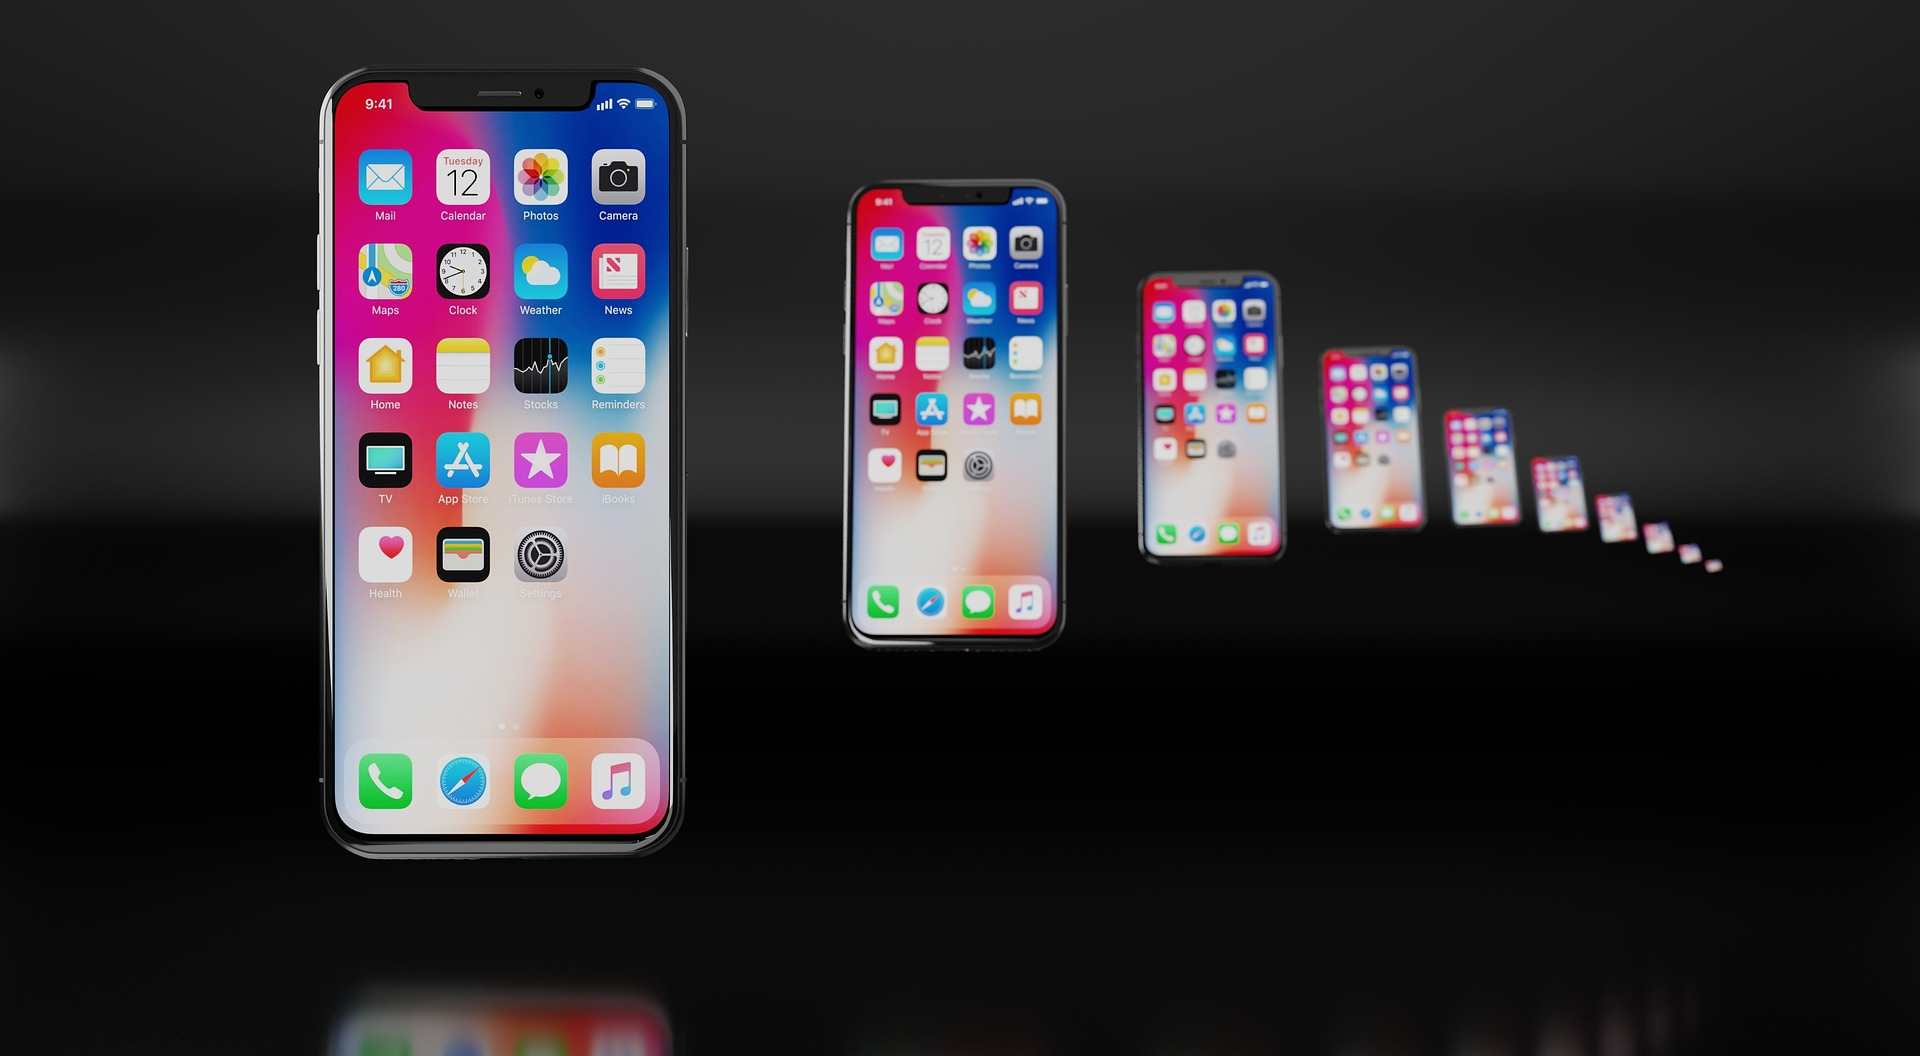 Motorola phone 'brazen copy' of iPhone X